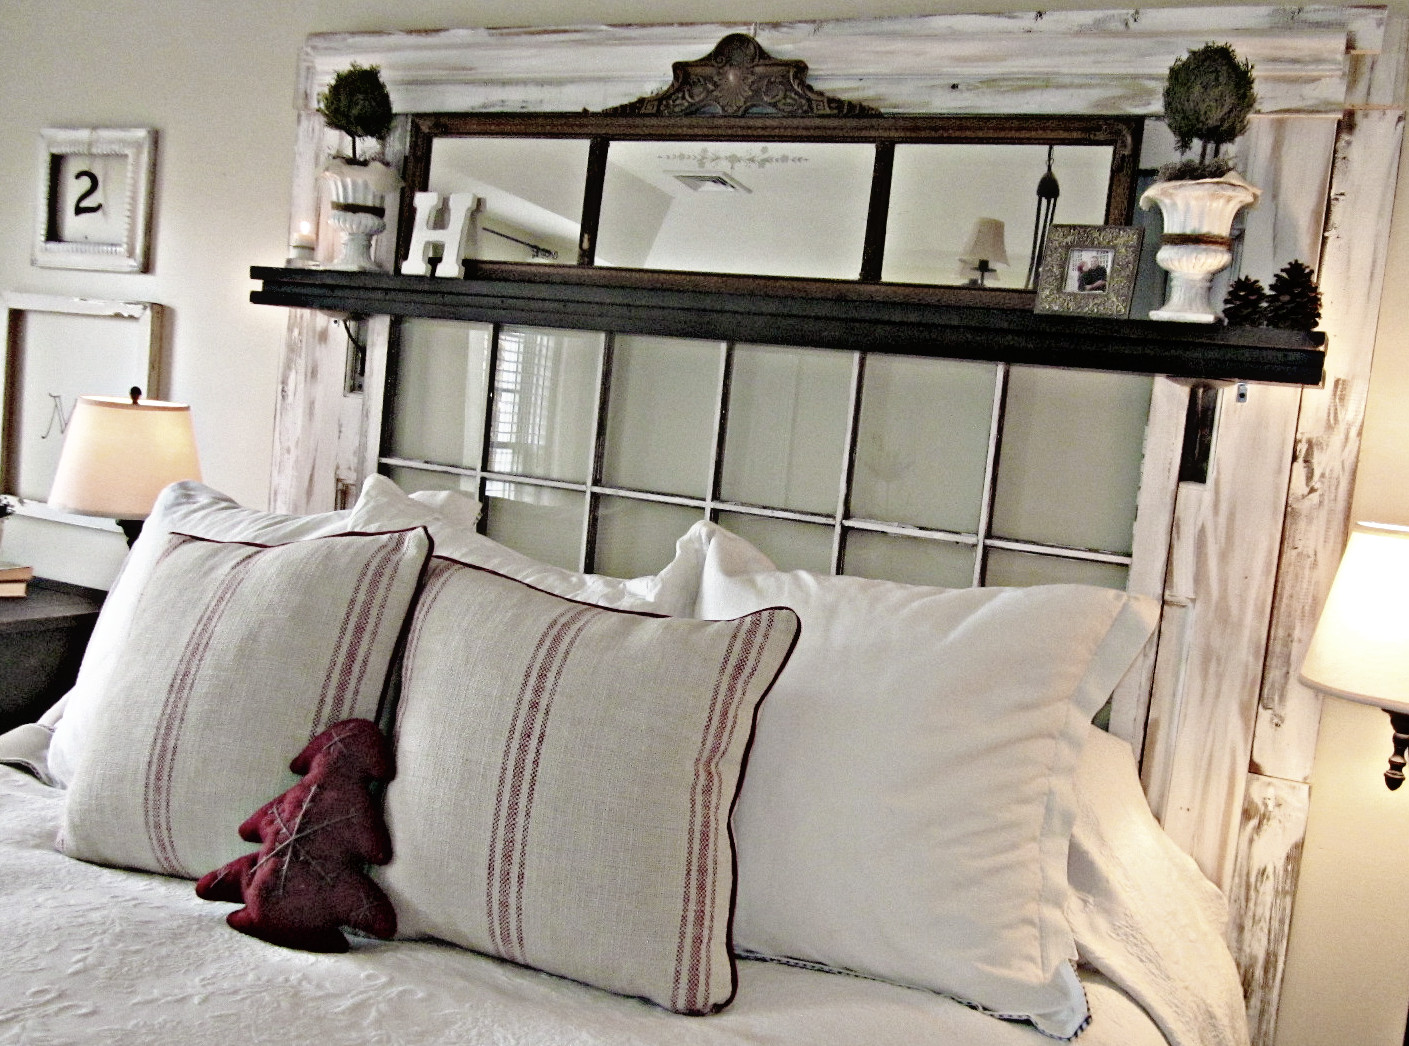 window headboard & The Blind and Shutter Gallery - Custom Blinds Shades Shutters ... Pezcame.Com